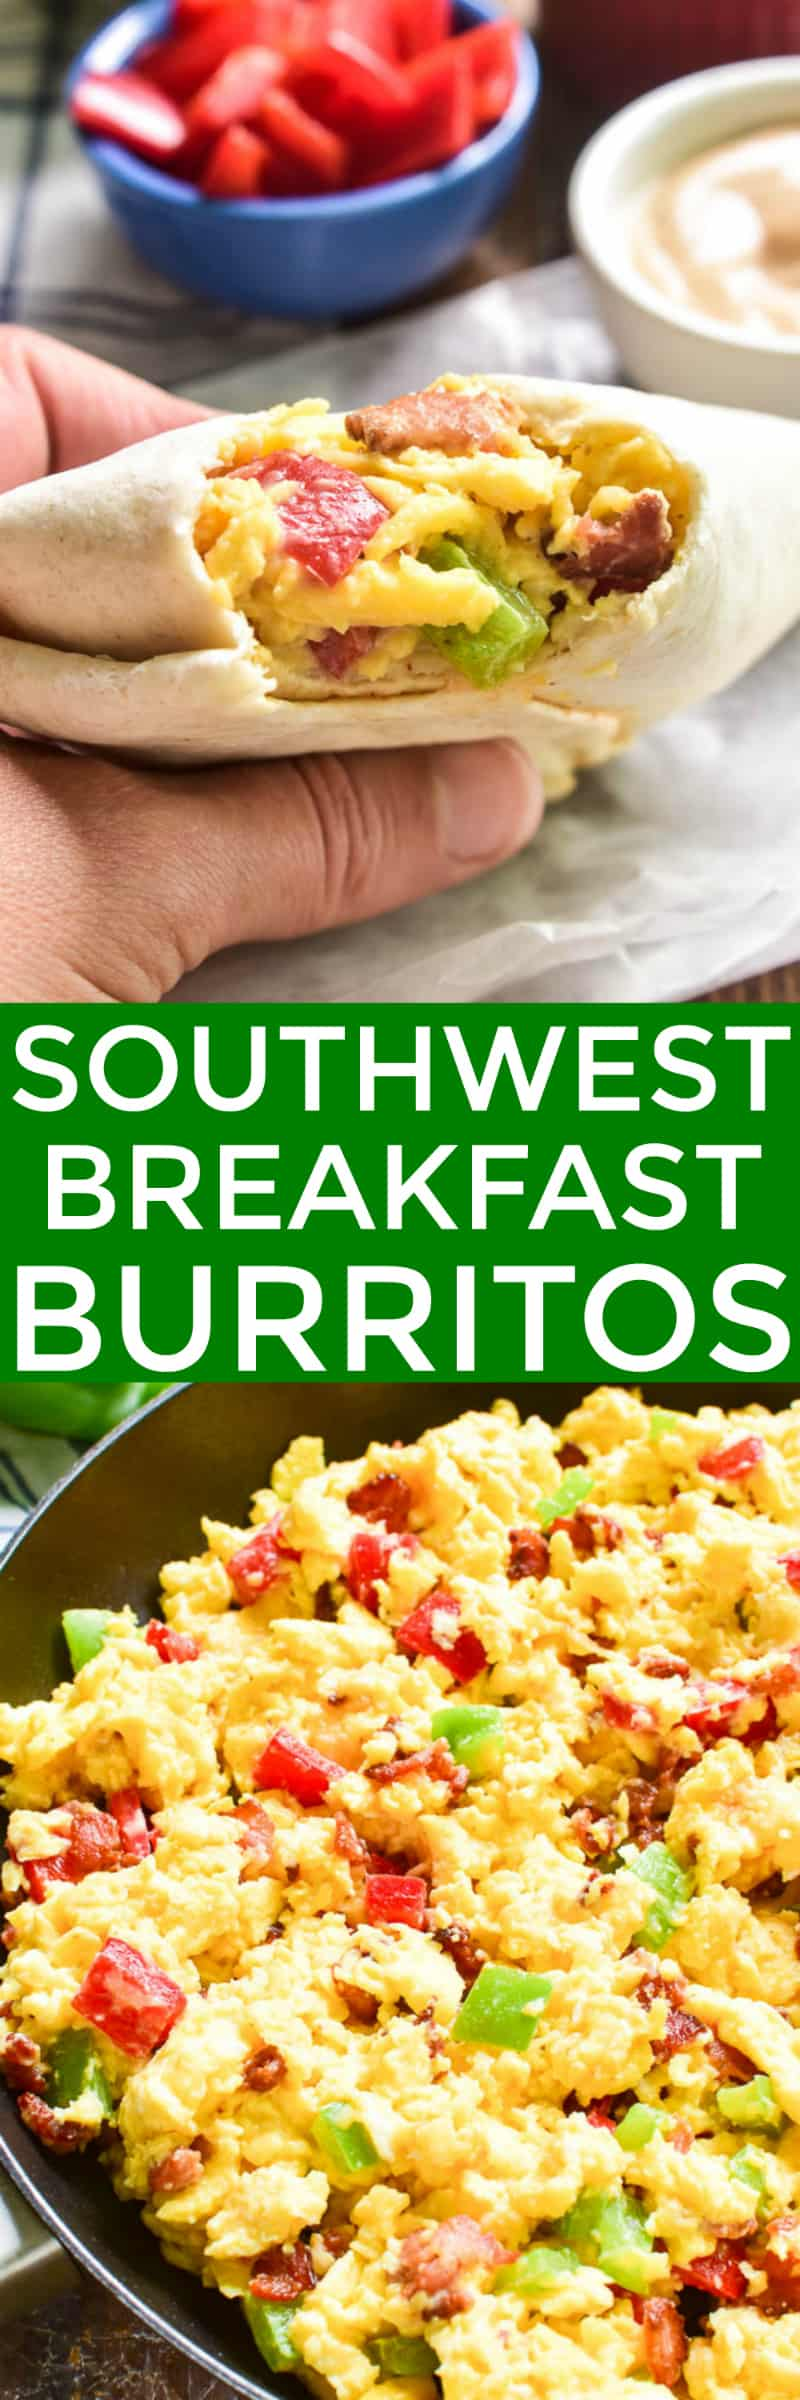 These Southwest Breakfast Burritos are packed with the BEST flavors! Loaded with scrambled eggs, bacon, peppers, cheese, and a creamy chipotle sauce, they're a deliciously satisfying way to start the day. These burritos are easy to make ahead and store in the fridge or freezer, then re-heat in the microwave for a quick and easy breakfast. They're perfect for adults and kids, alike....and guaranteed to take the stress out of busy mornings!